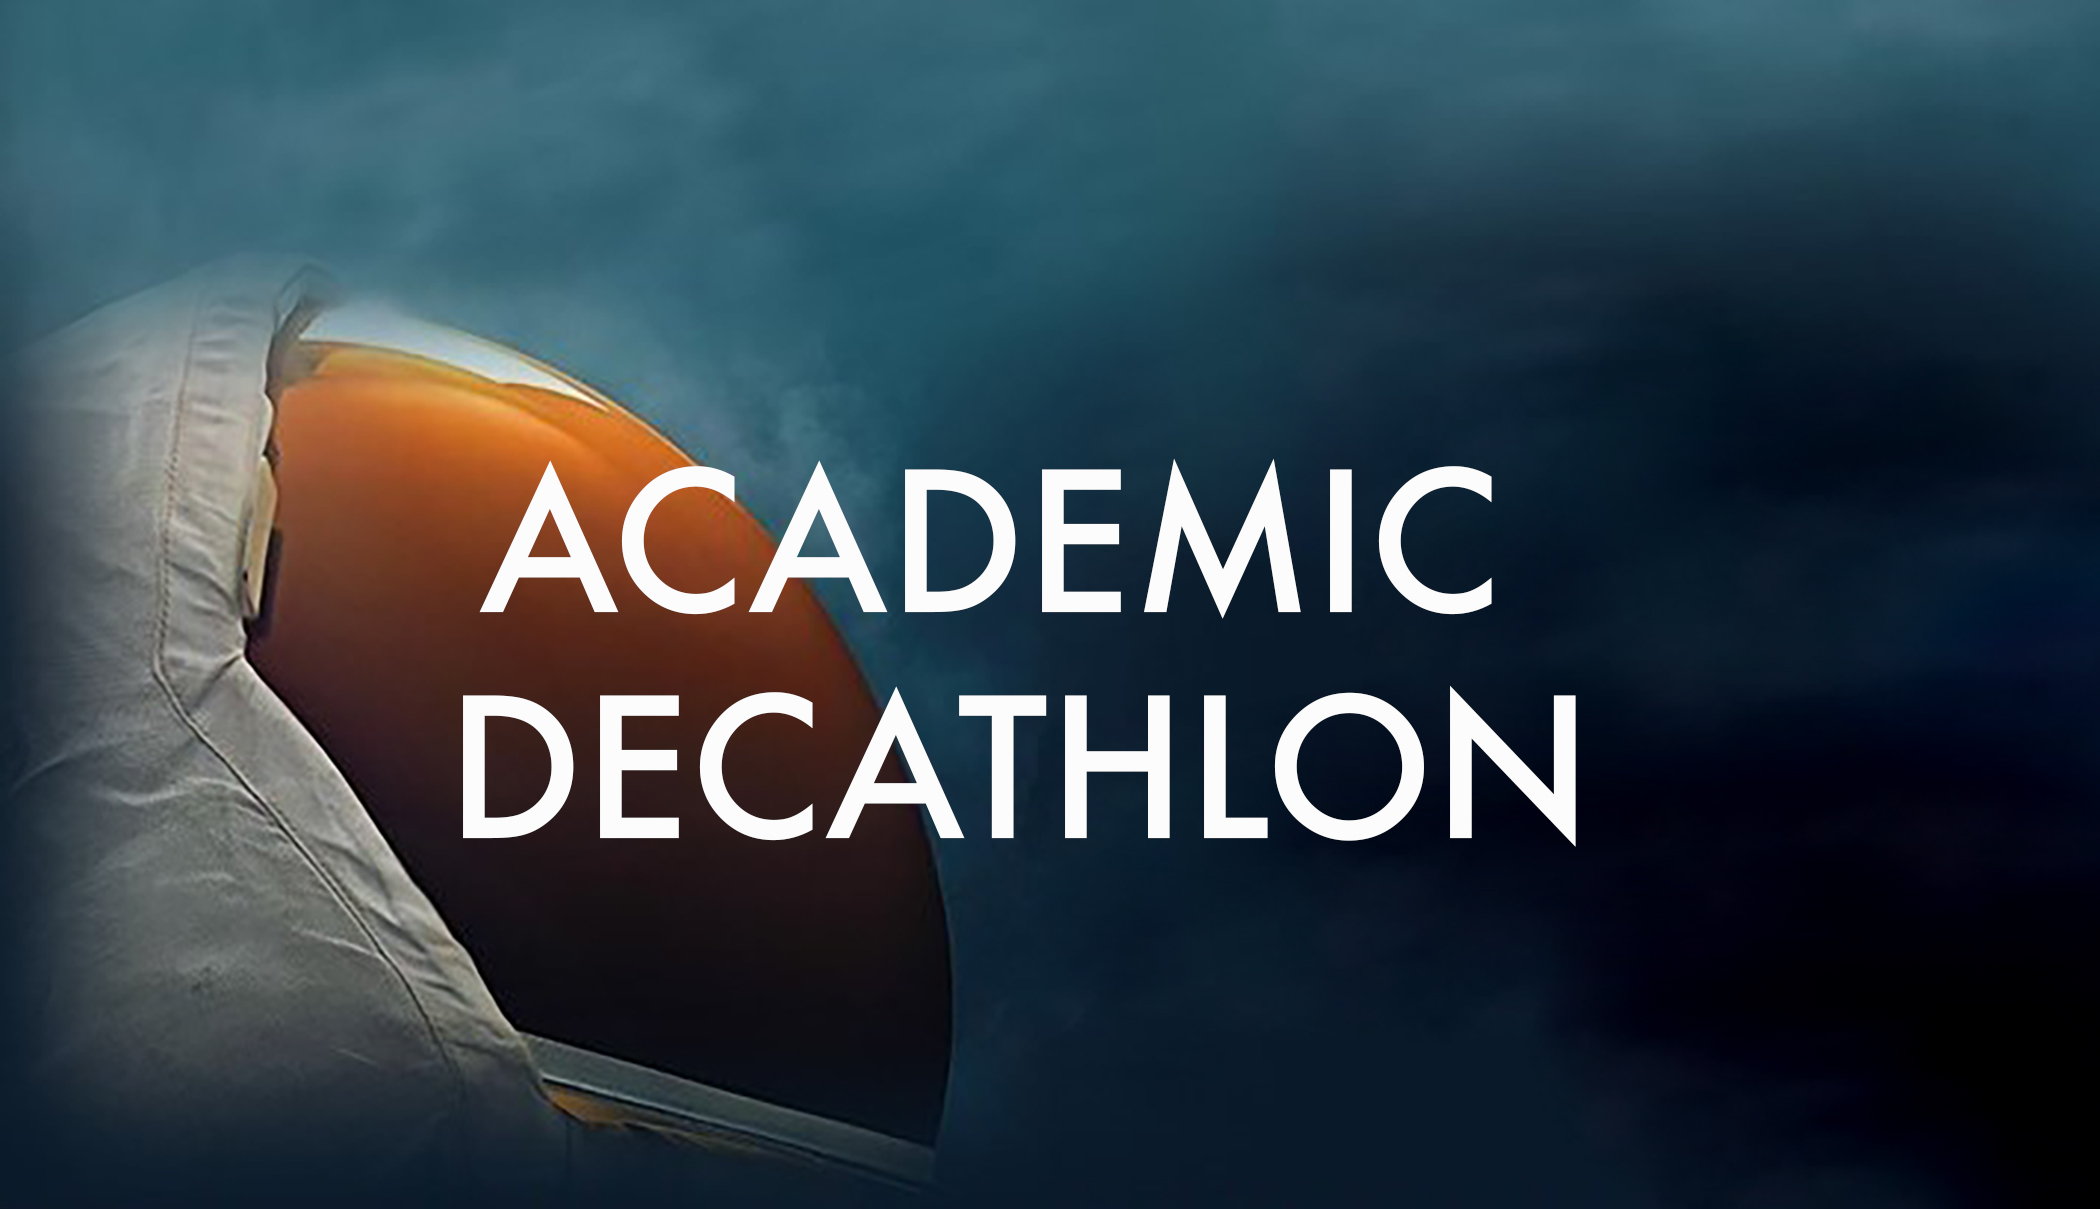 Academic Decathlon Results